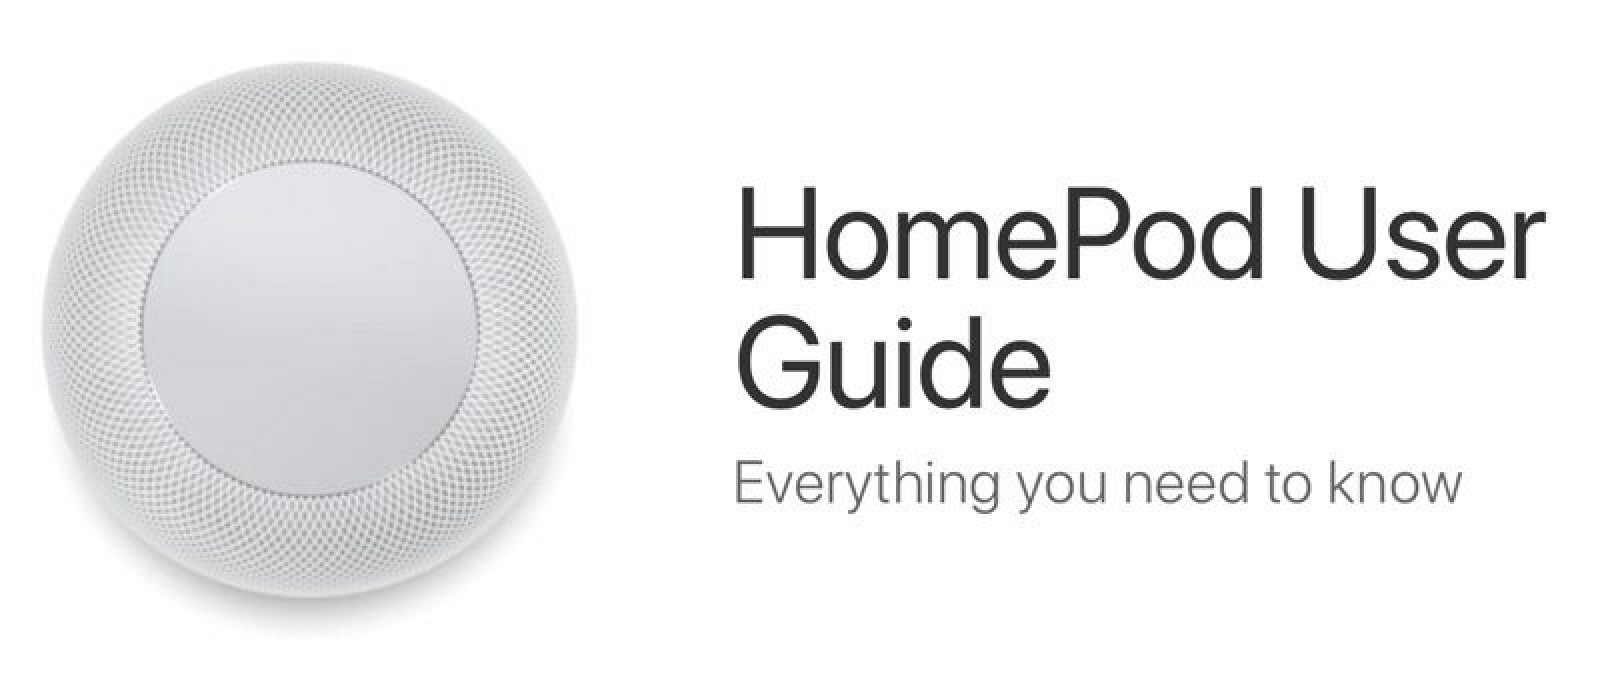 Apple shares official homepod user guide mac rumors publicscrutiny Choice Image